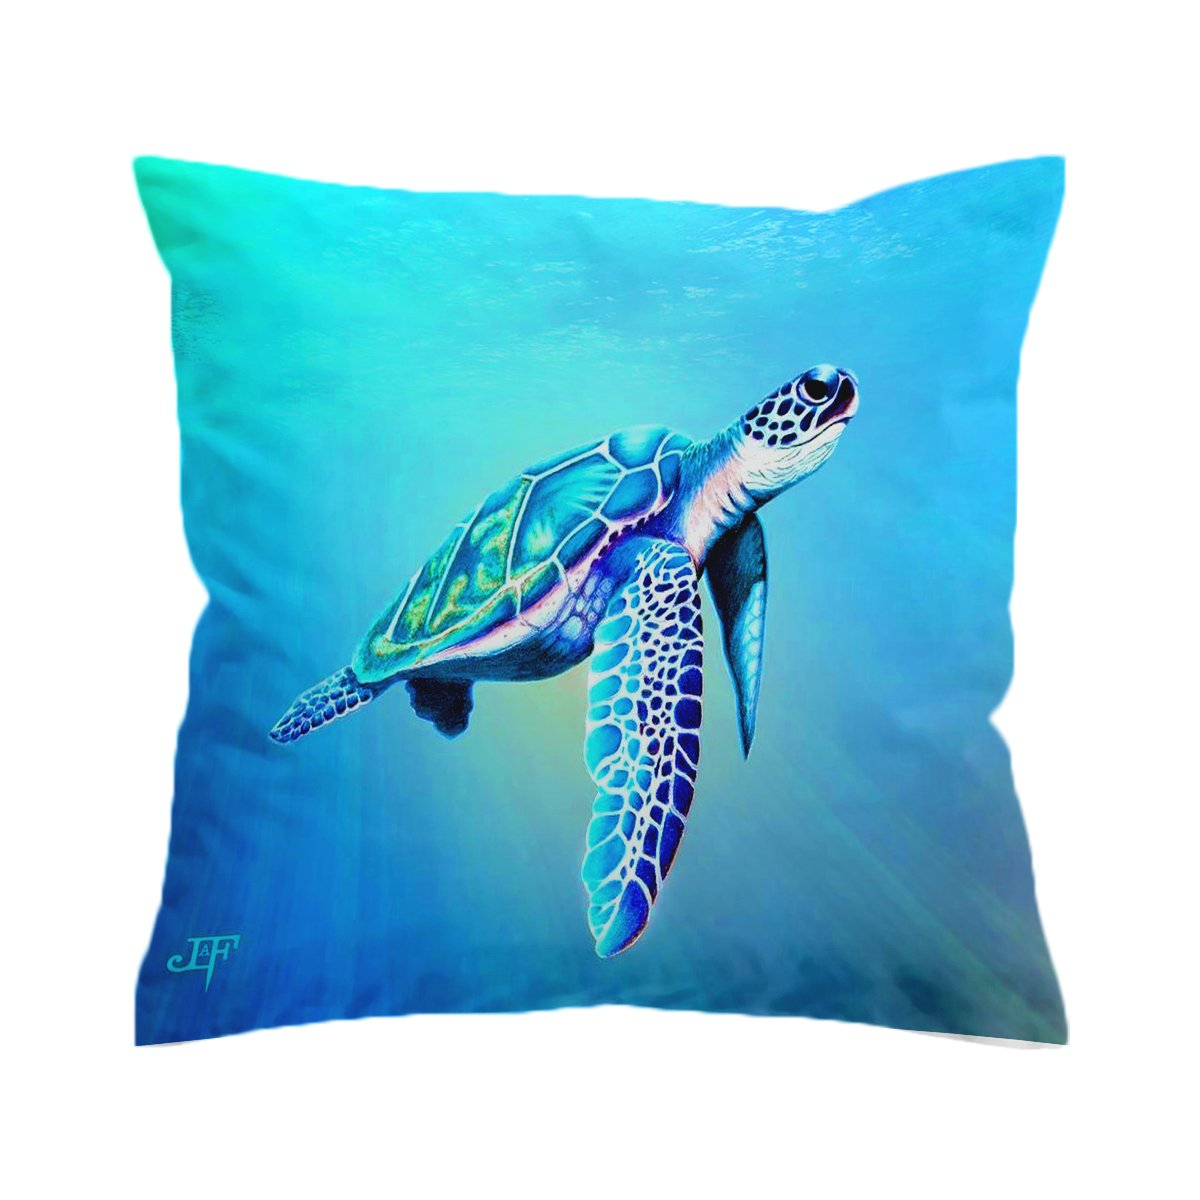 Turquoise Sea Turtle Pillow Cover